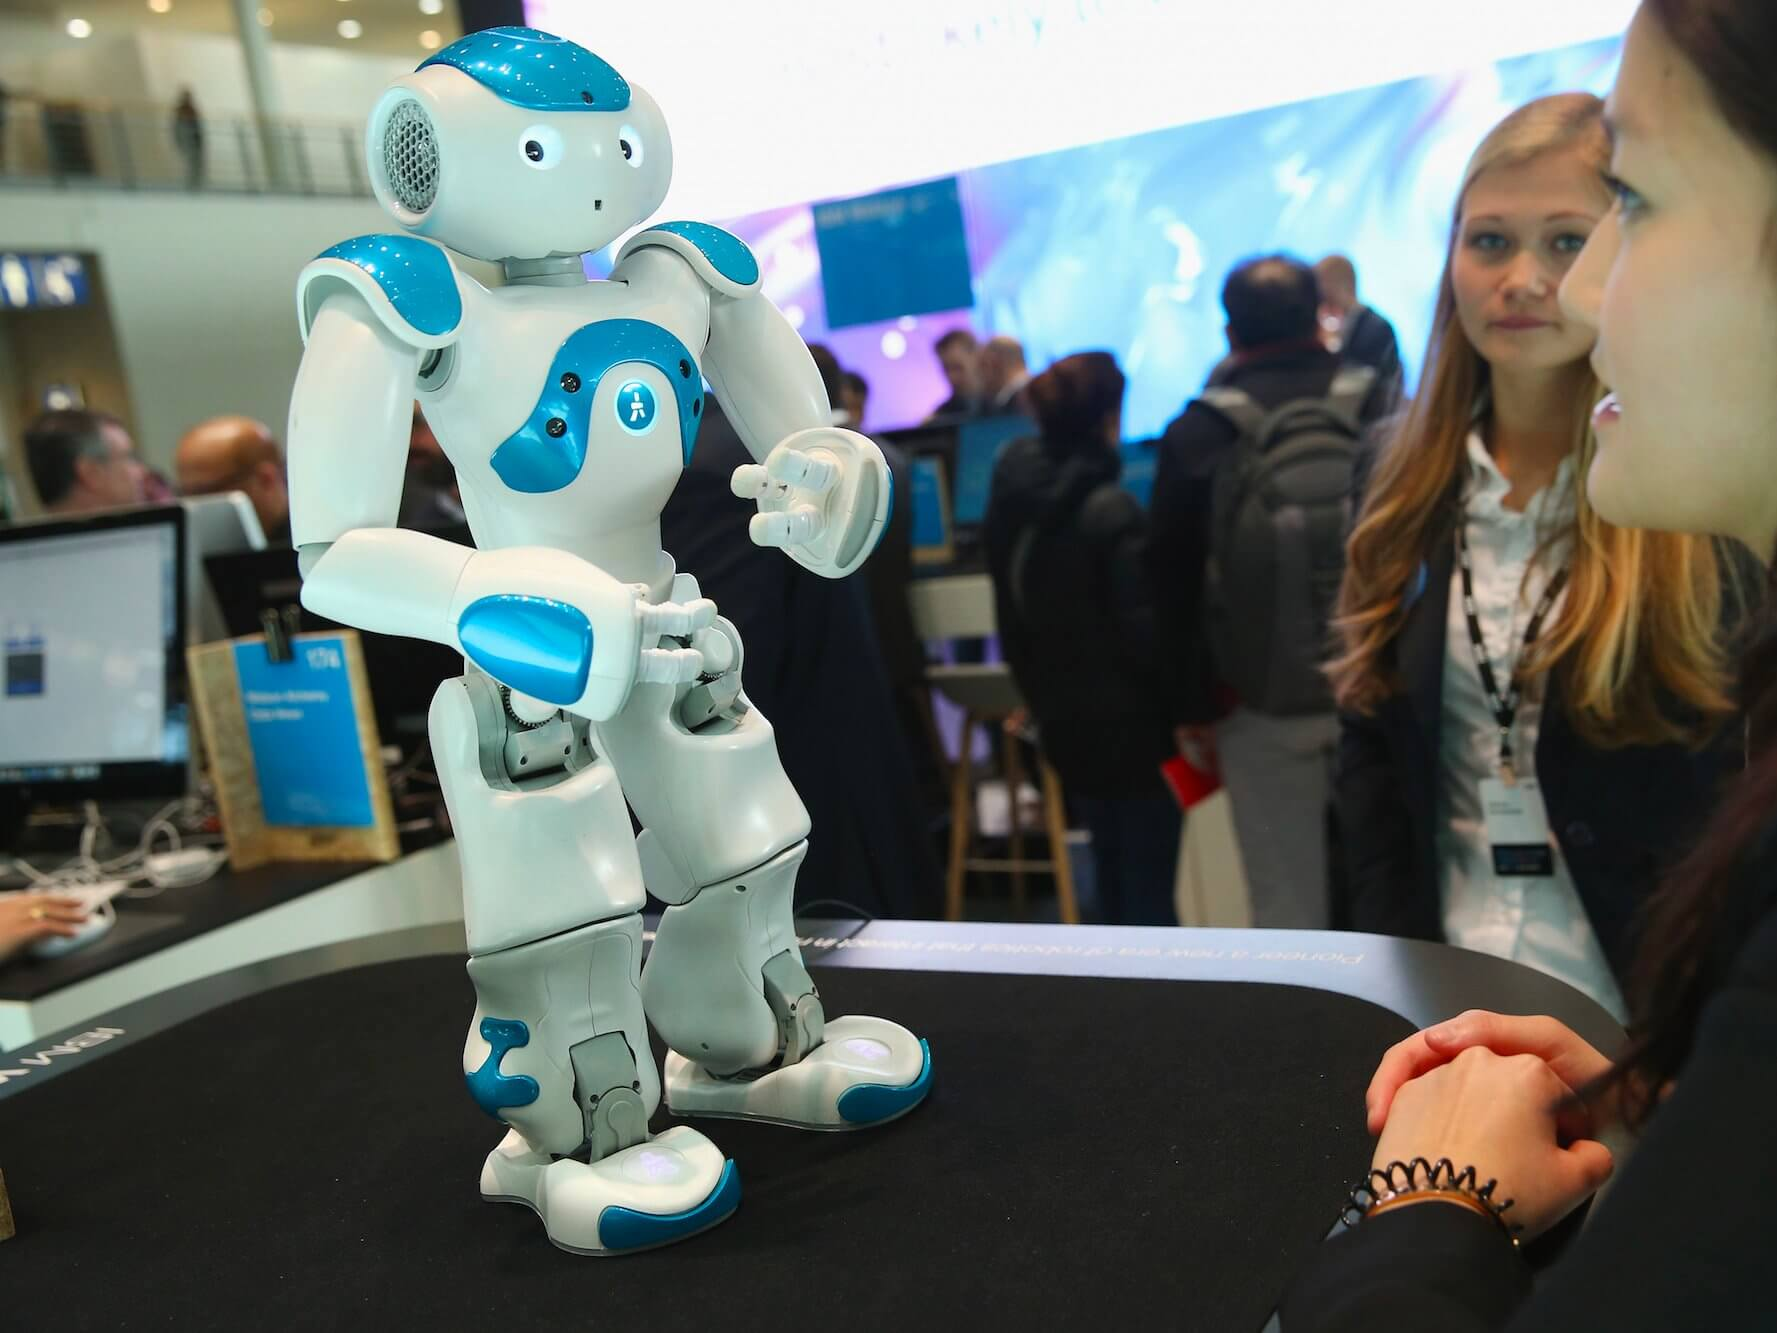 IBM A.I. Robtot is answering the Q of its visitors